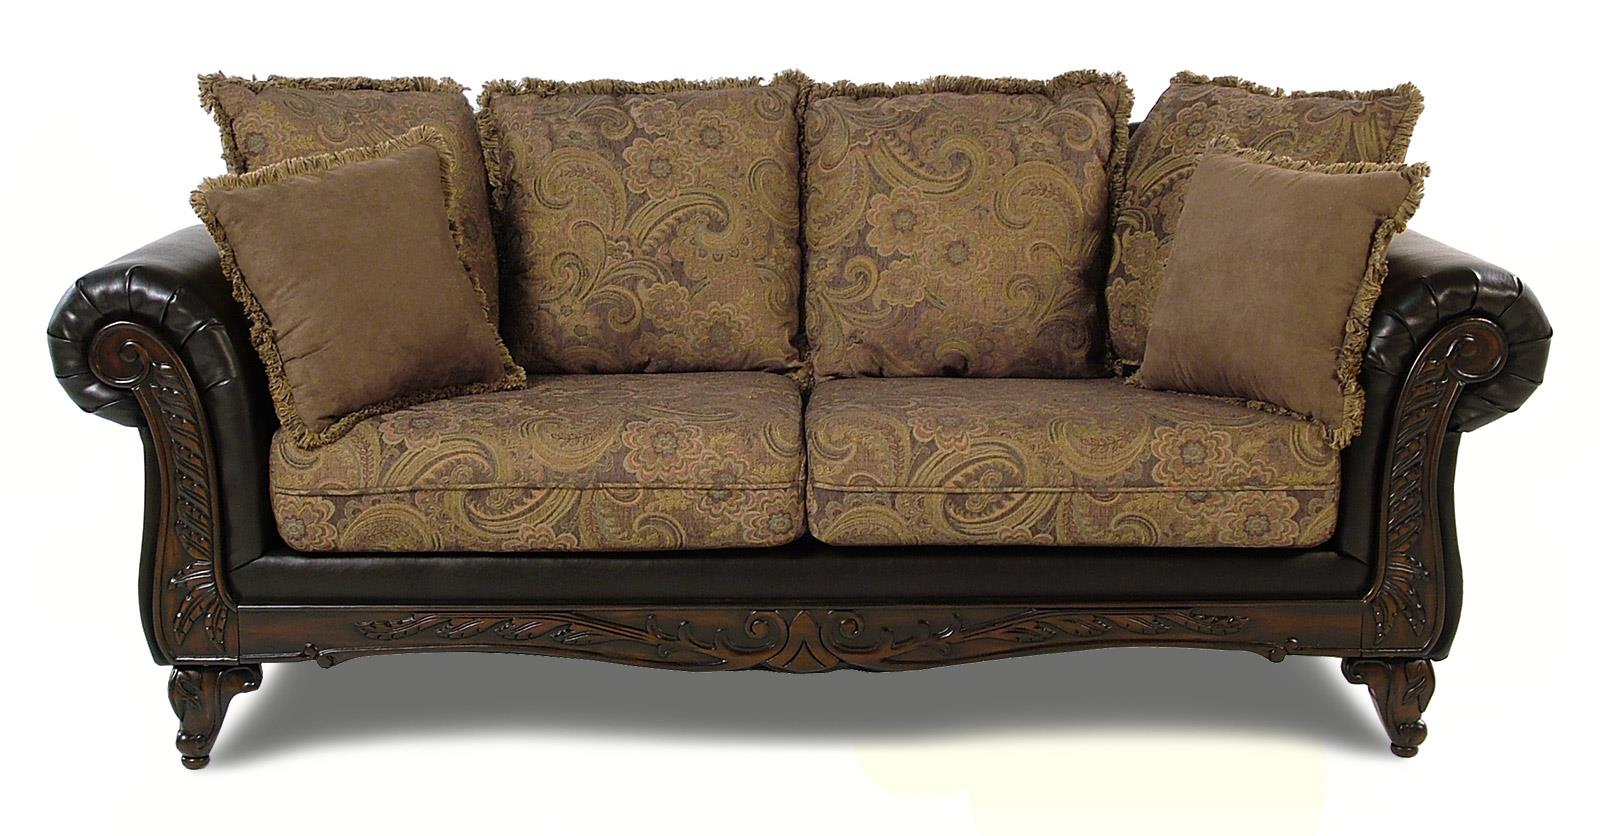 Sofa upholster coda industries benchmark alva sofa with for Furniture upholstery